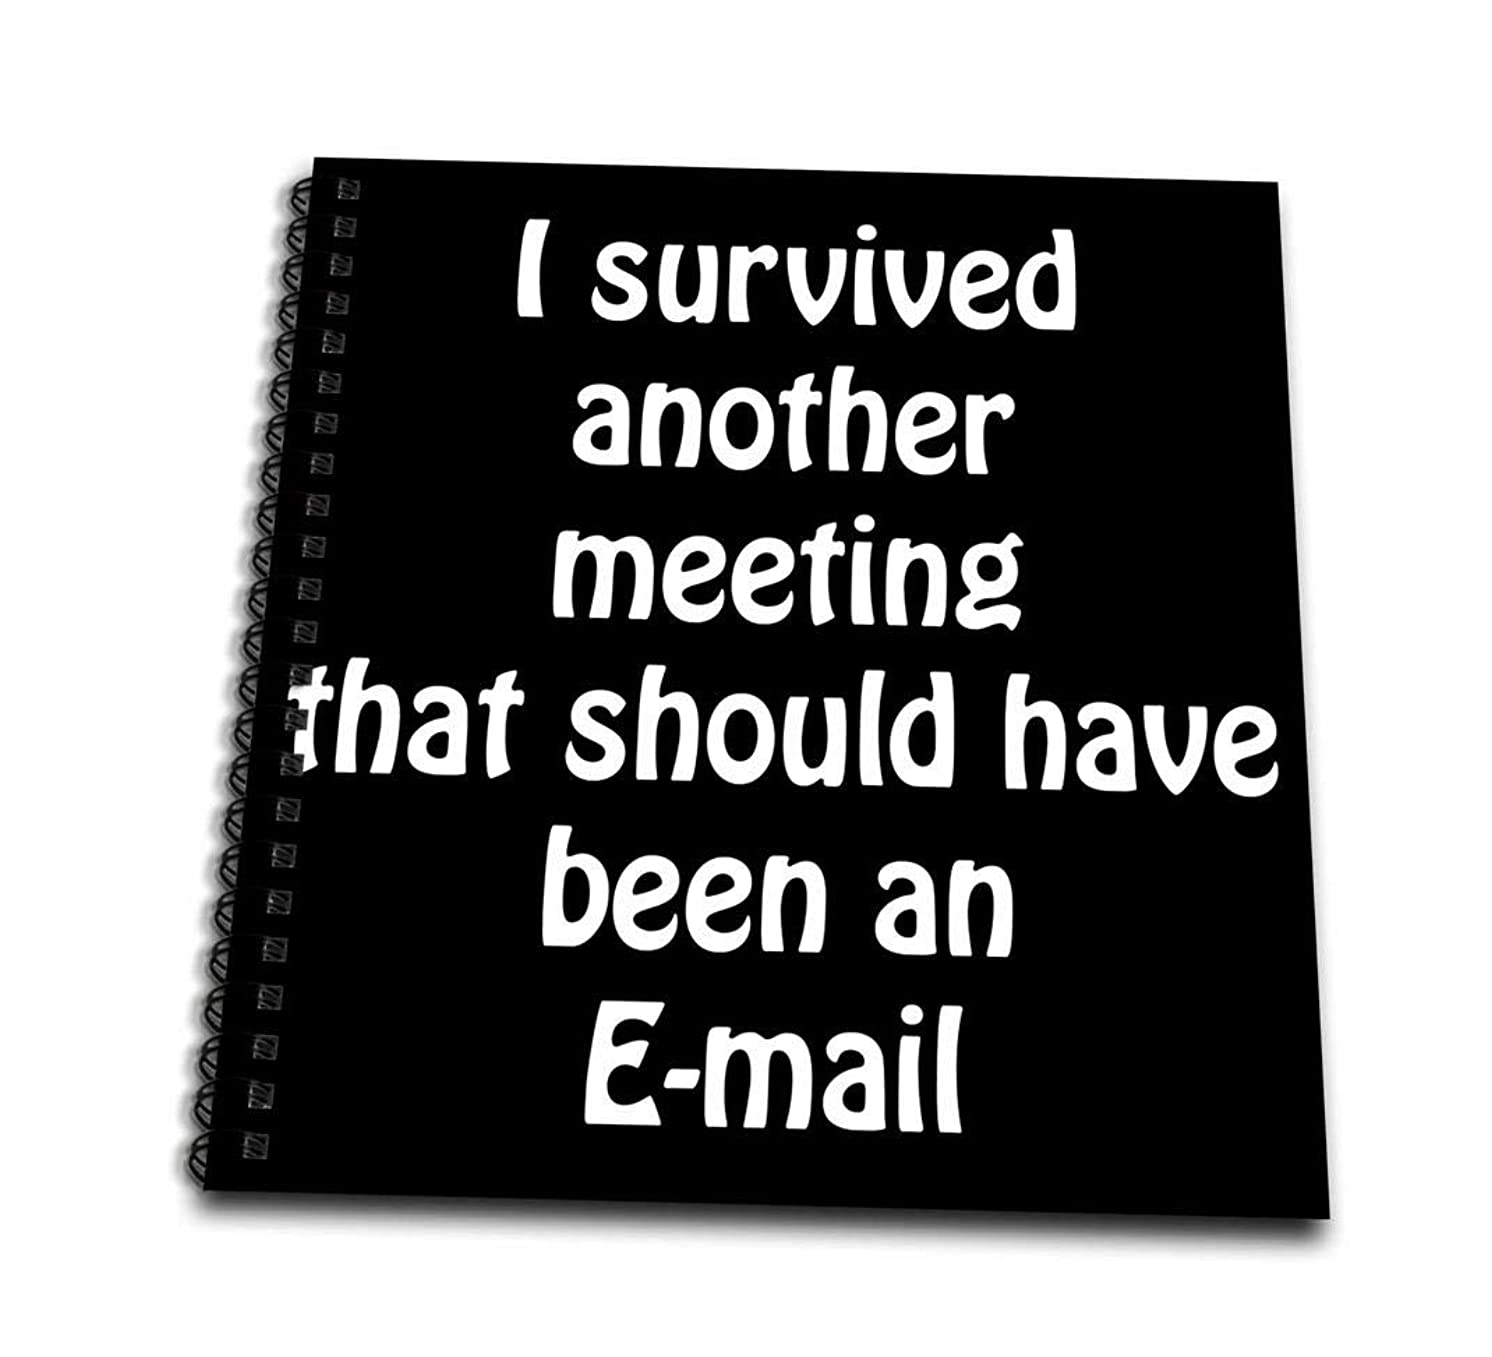 3dRose db_218472_3 I Survived Another Meeting That Should Have Been an Email Mini Notepad, 4 by 4